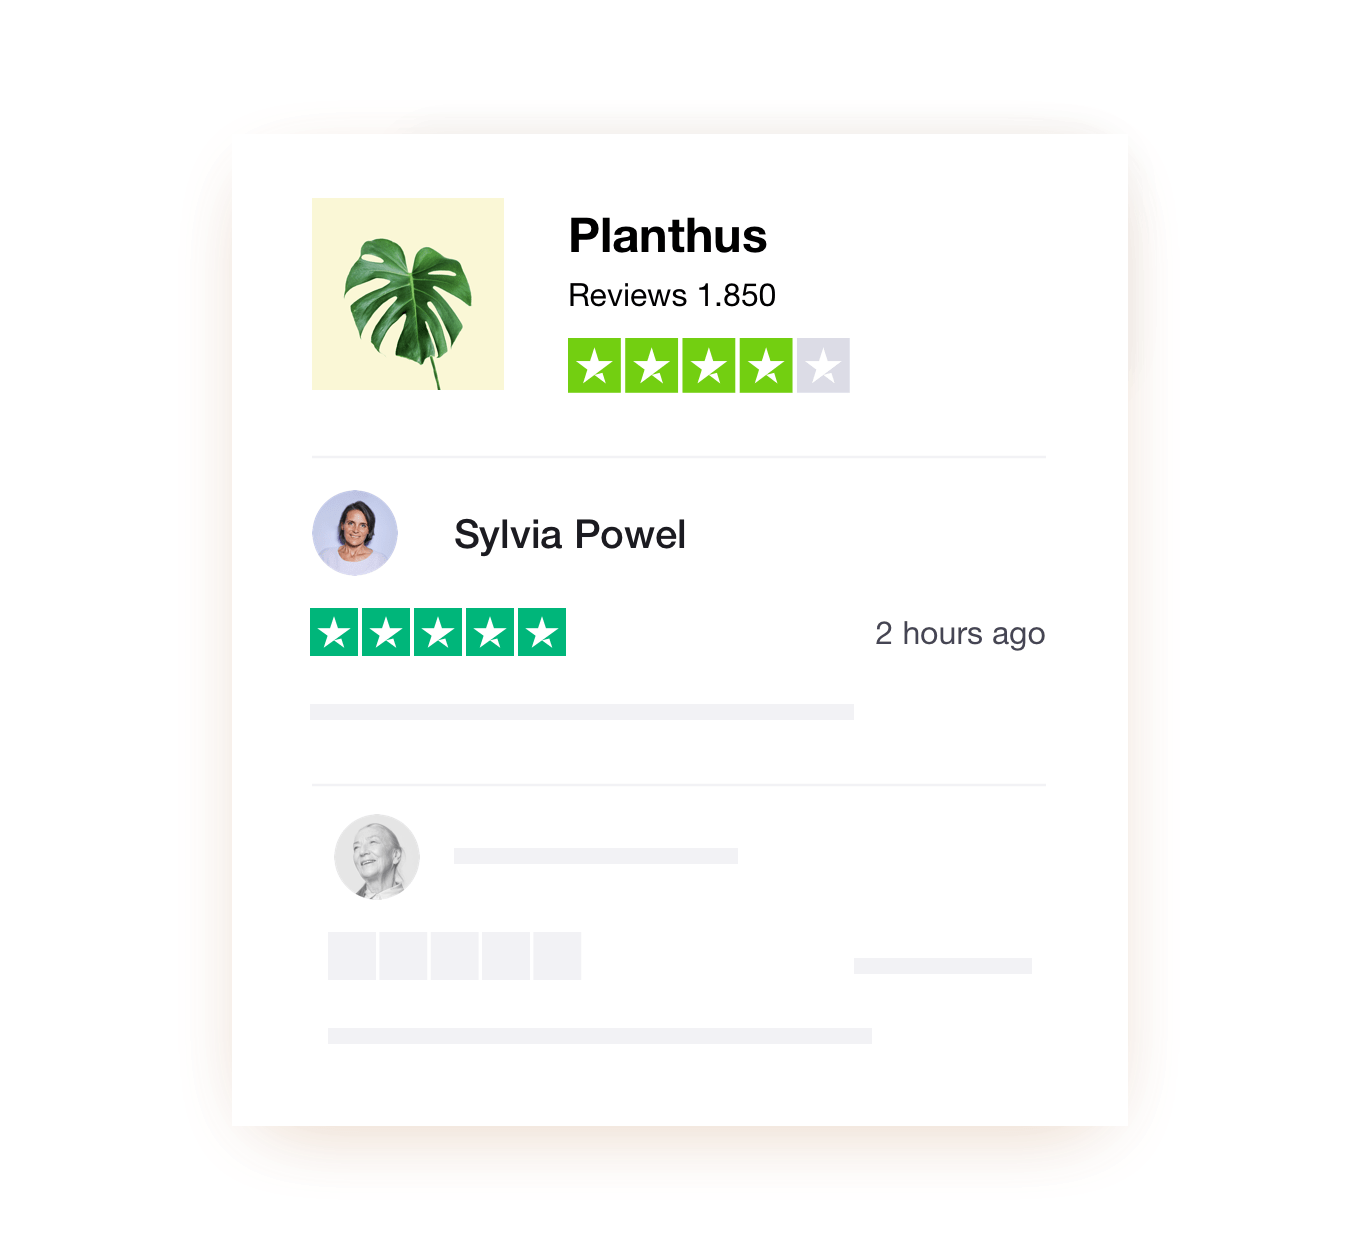 A review of Planthus showing Trustpilot reviews